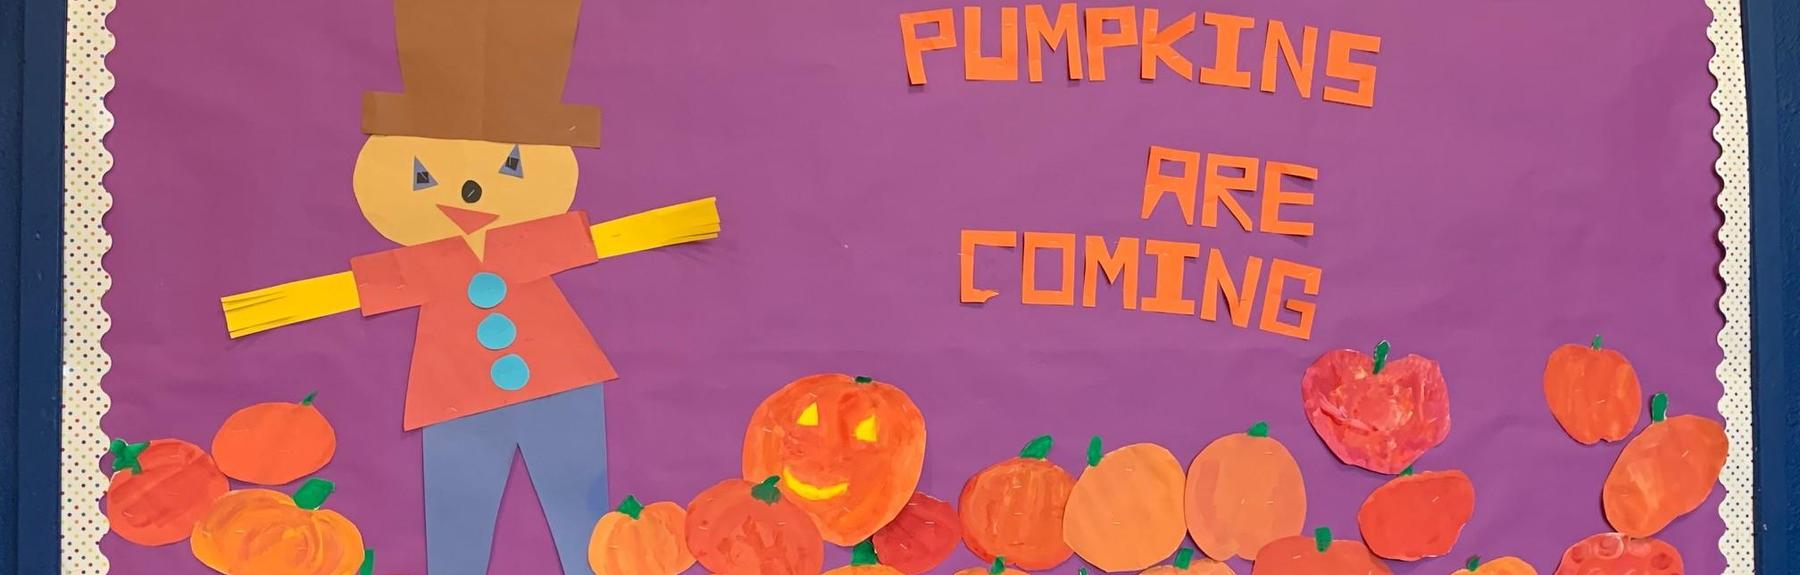 MPR Bulletin Board with pumpkin cutouts that says Pumpkins are Coming